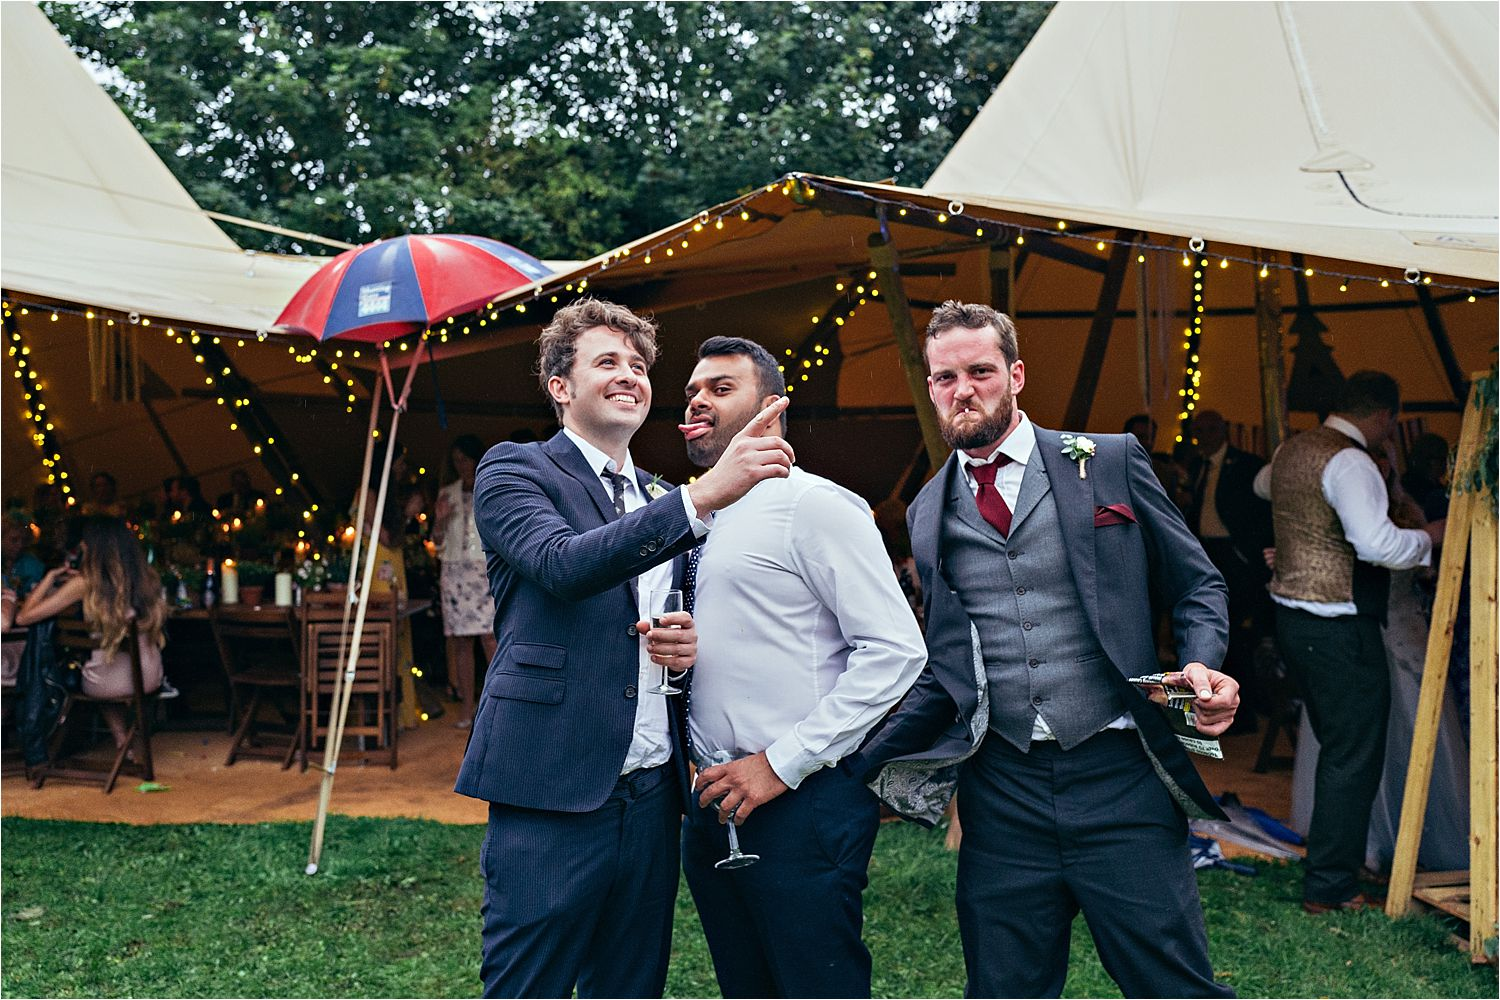 Men pulling faces outside tipi at Bedfordshire wedding reception. Tipi by Country tipis